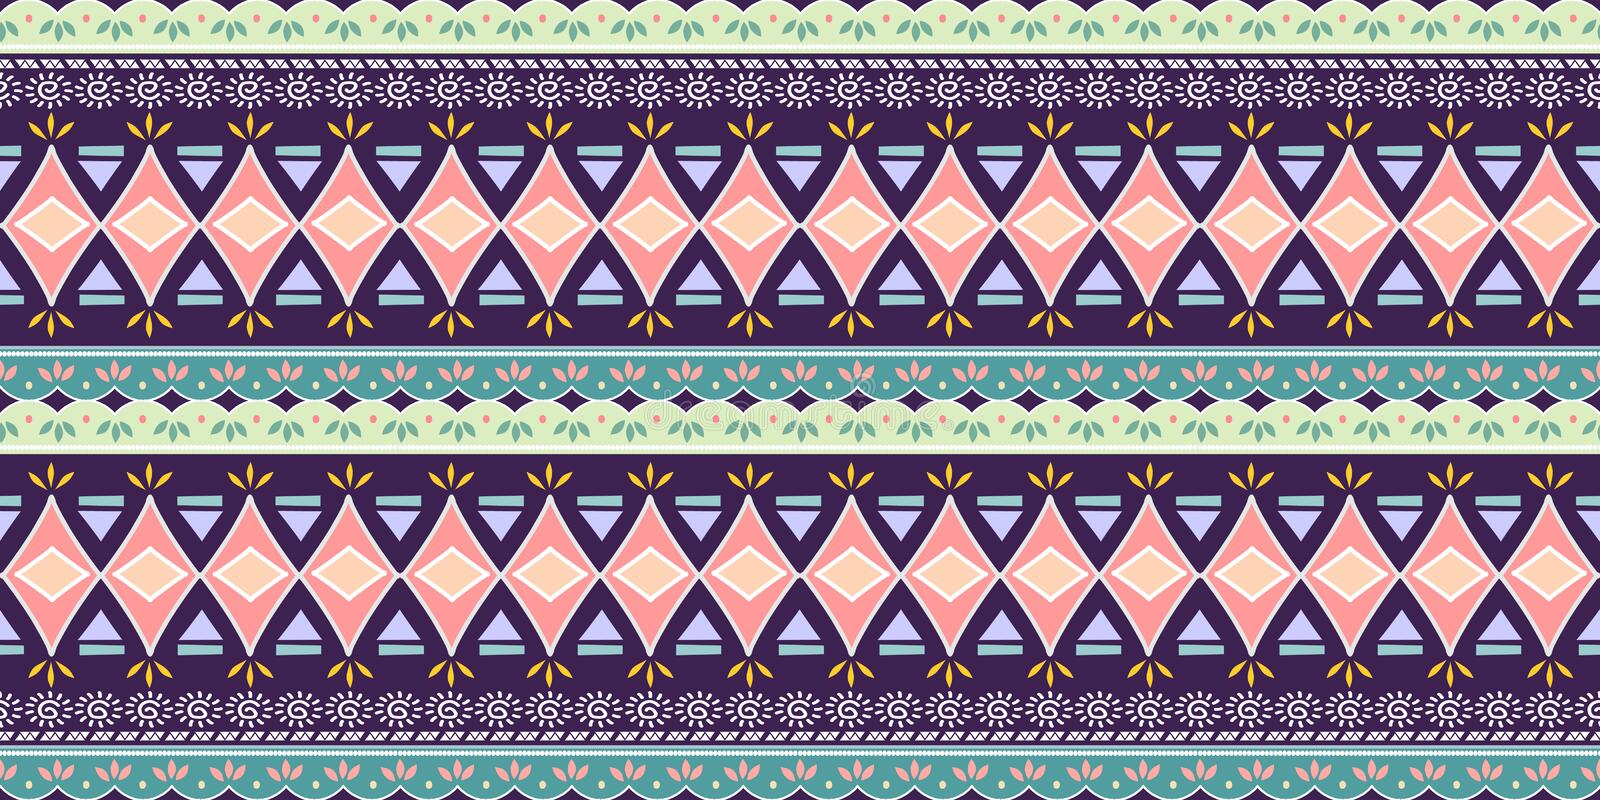 Abstract zigzag pattern for cover design. Retro african vector background. Geometric decorative seamless royalty free illustration